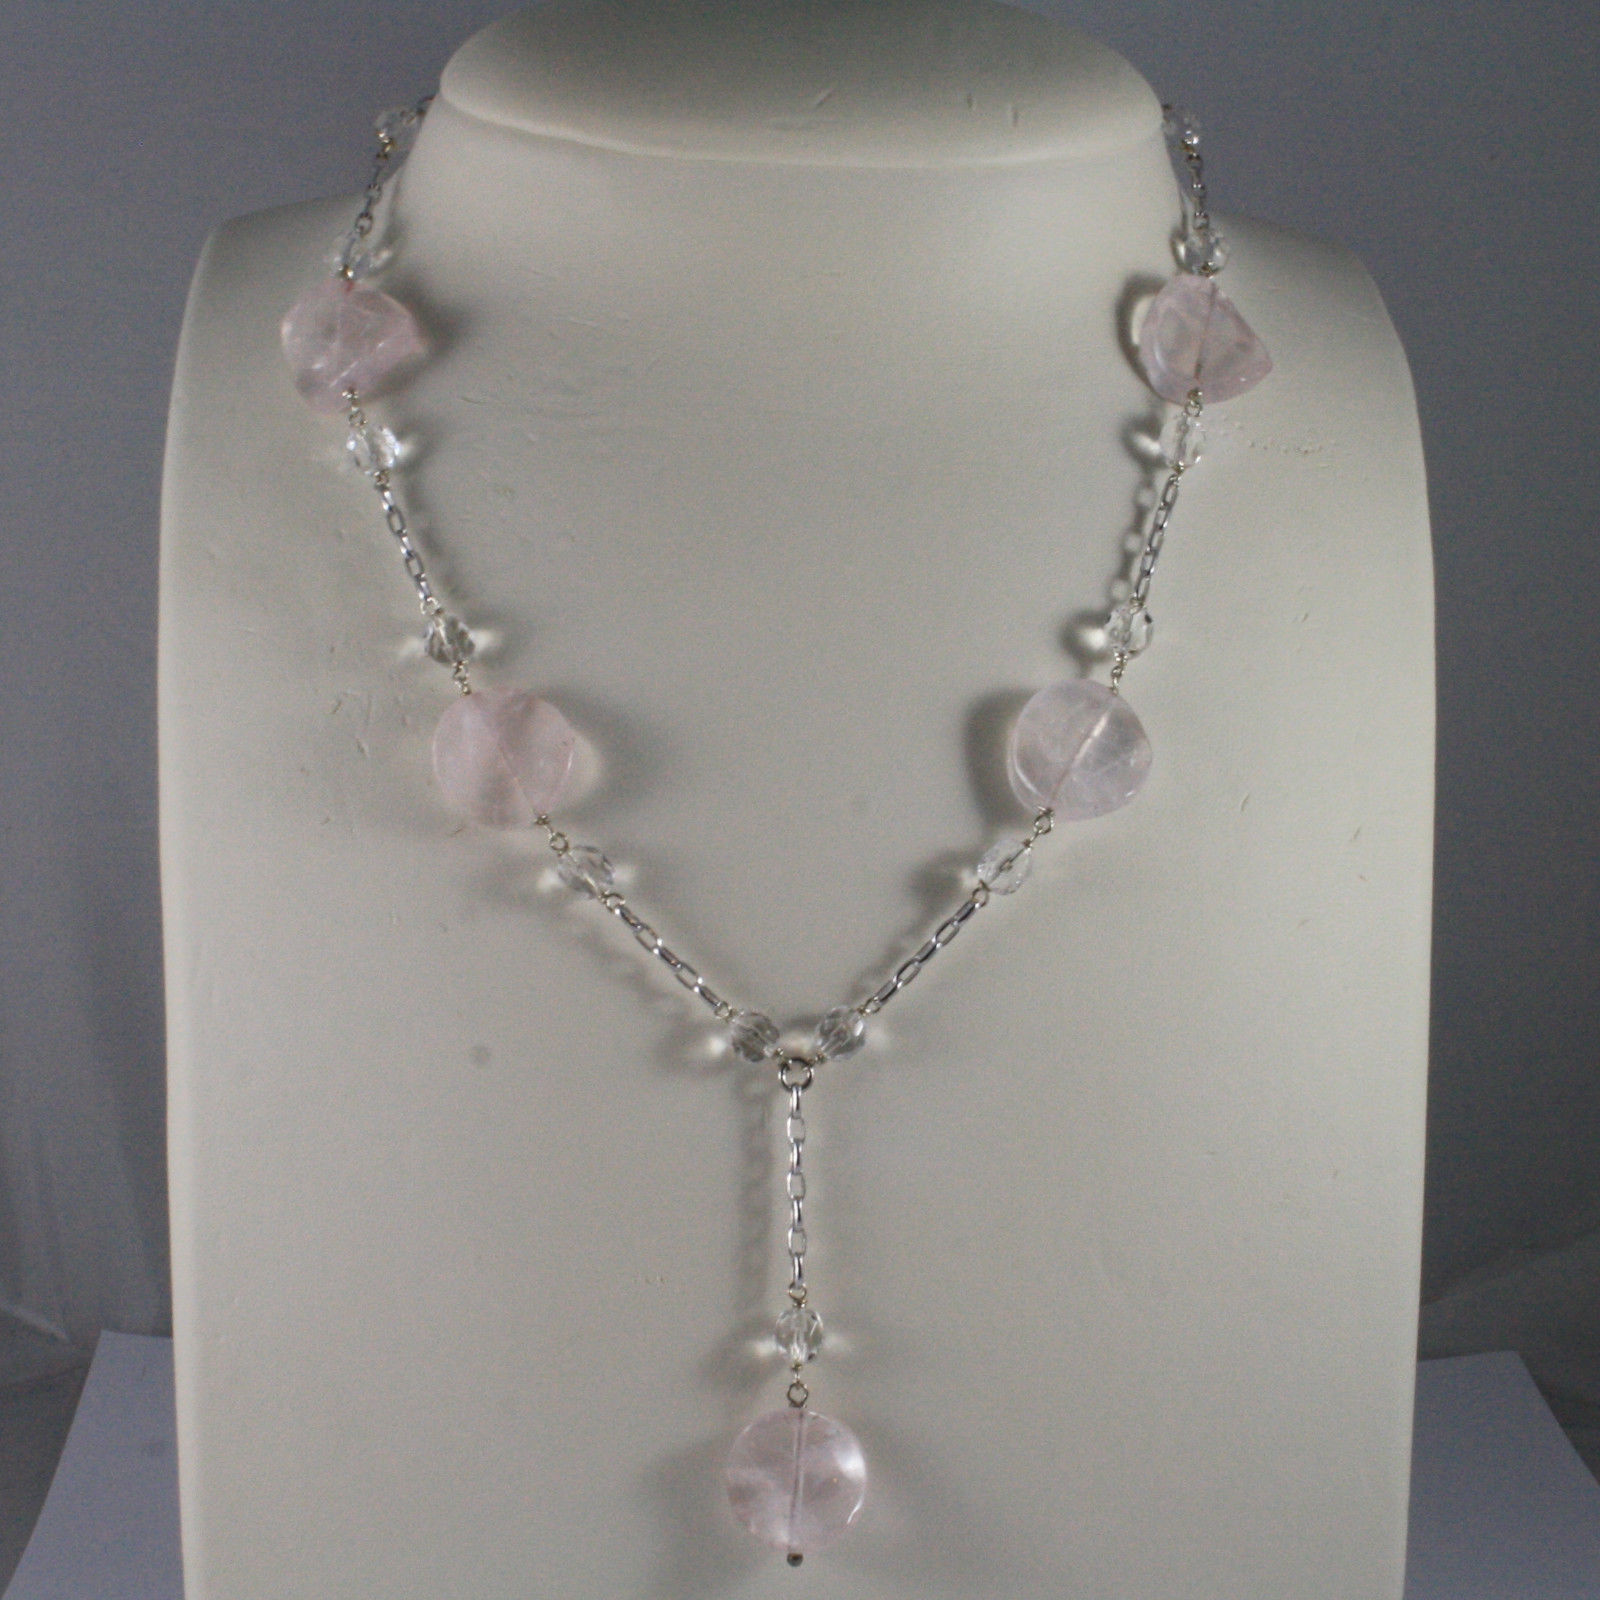 .925 SILVER RHODIUM NECKLACE WITH TRANSPARENT AND PINK CRISTALS LENGTH 16,93 IN